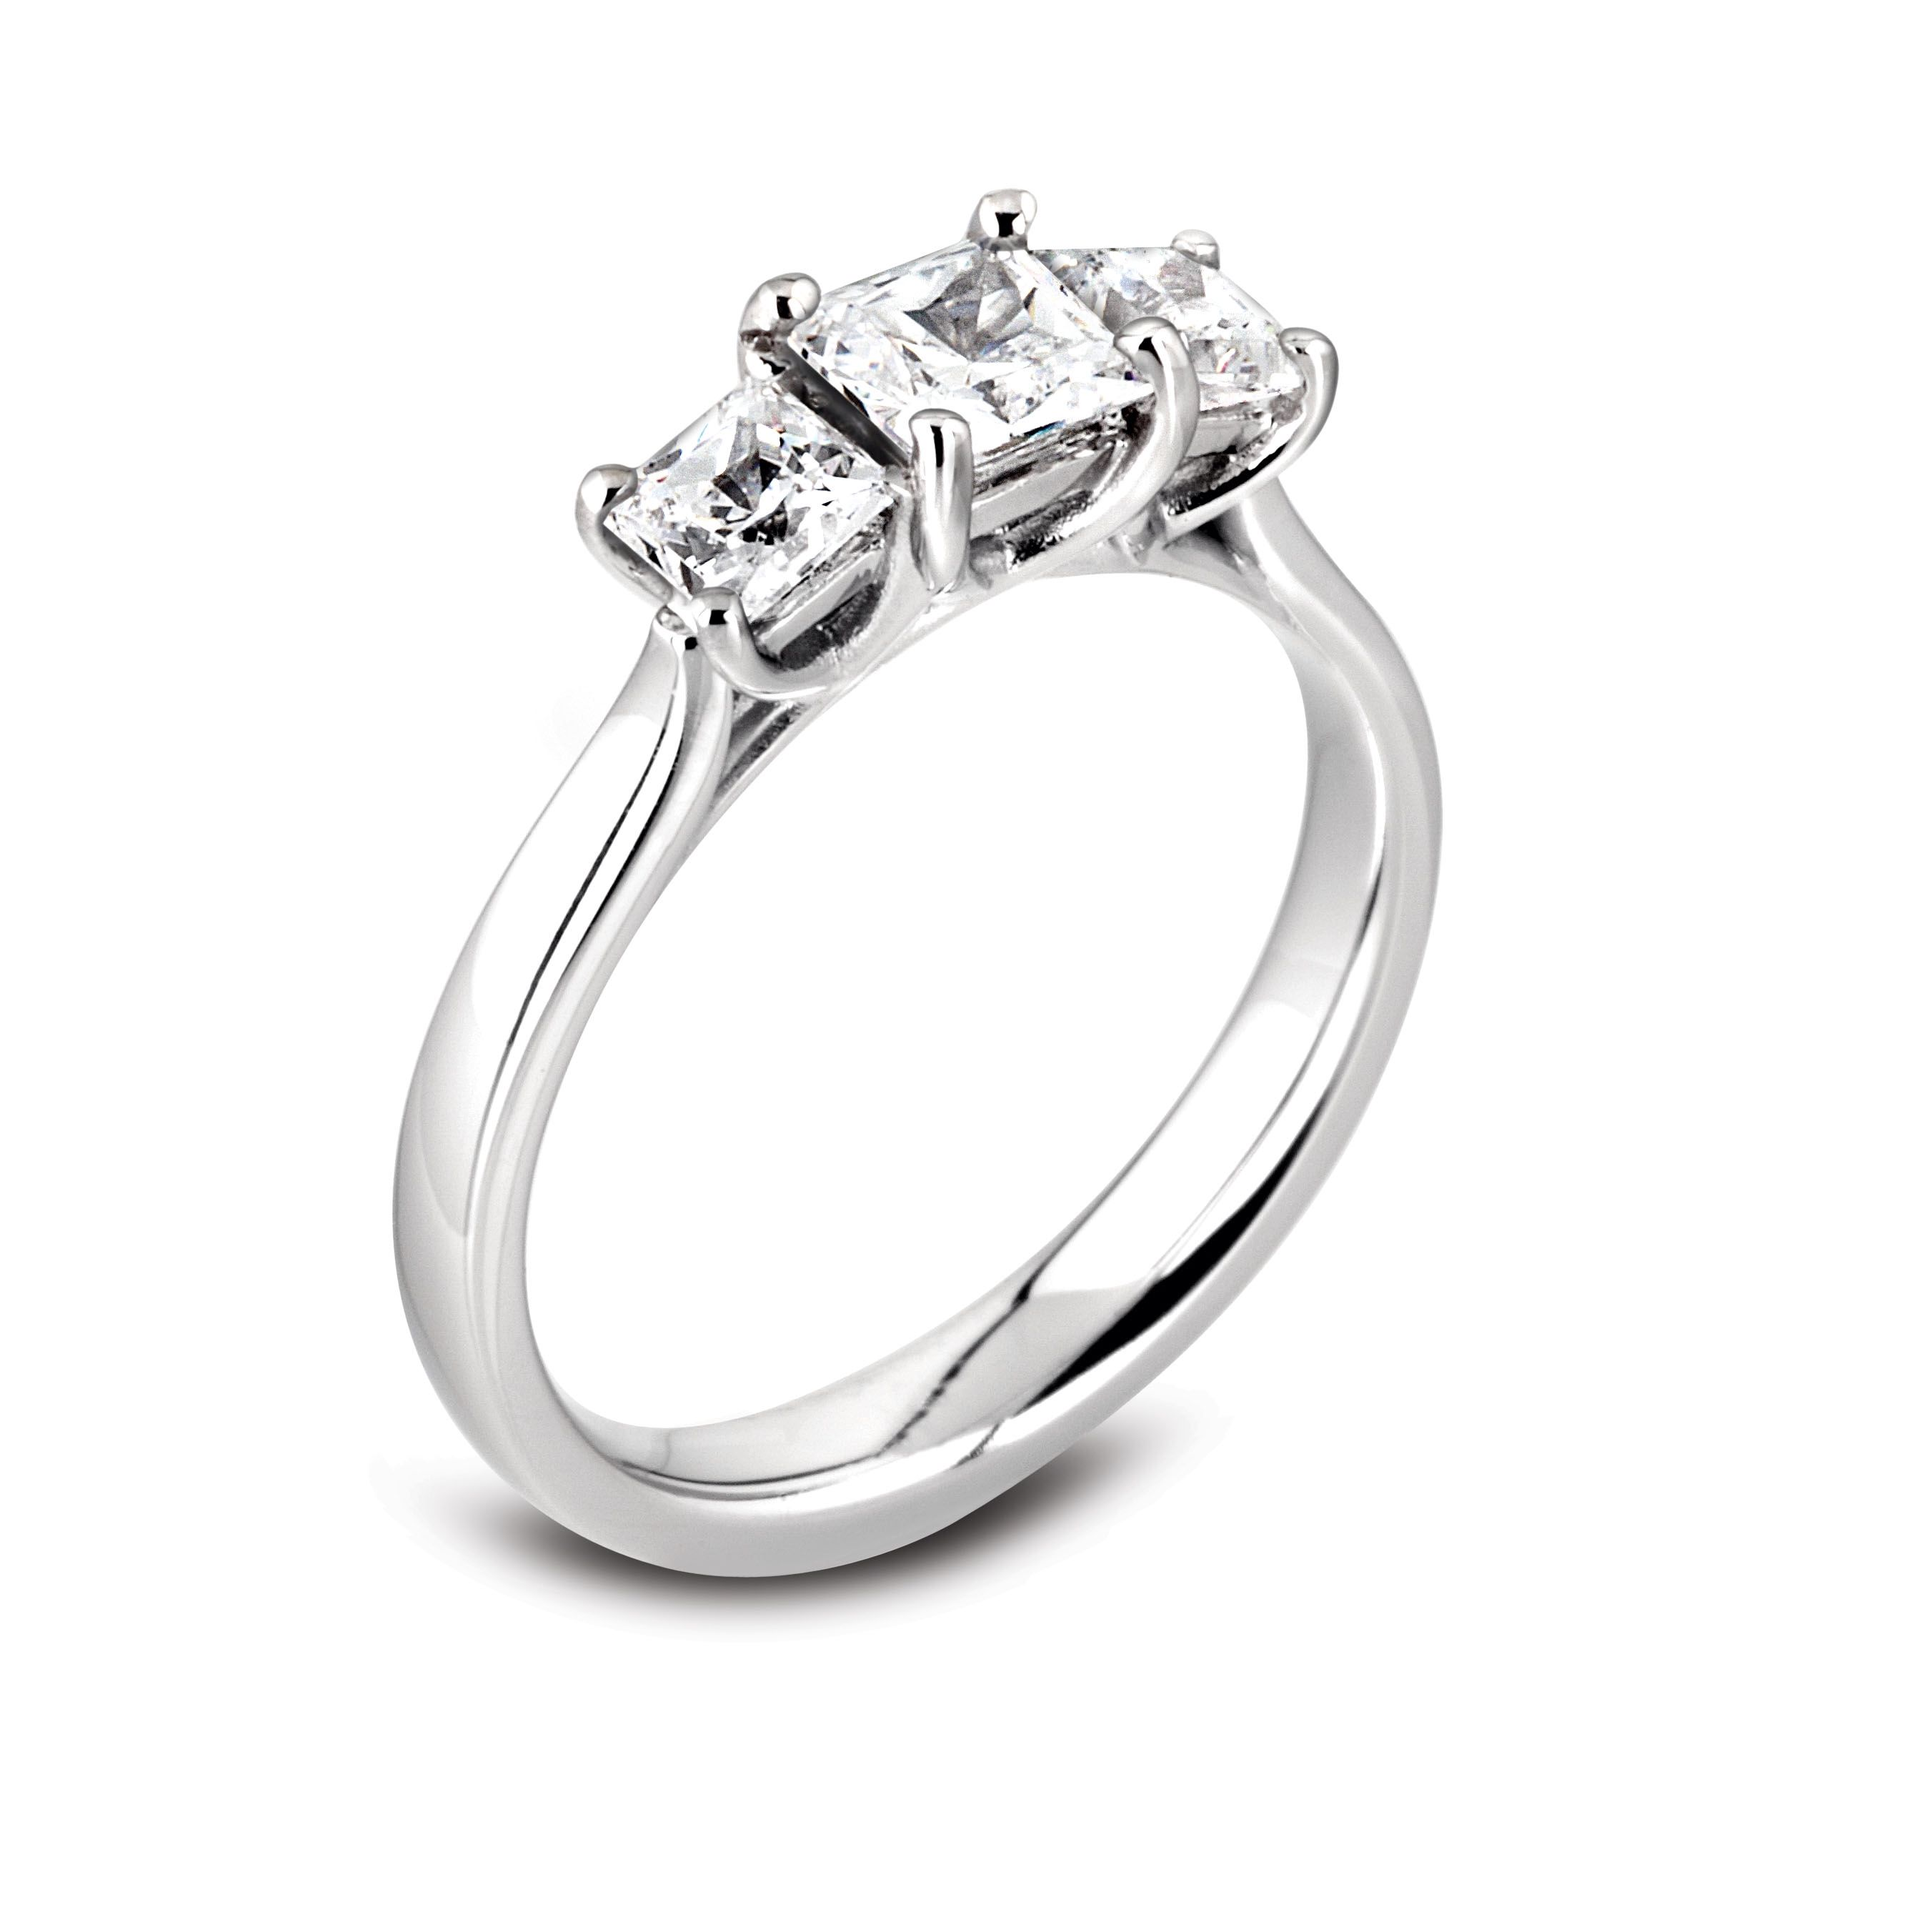 Princess cut diamond 3 stone ring mounted in 4 claw settings in